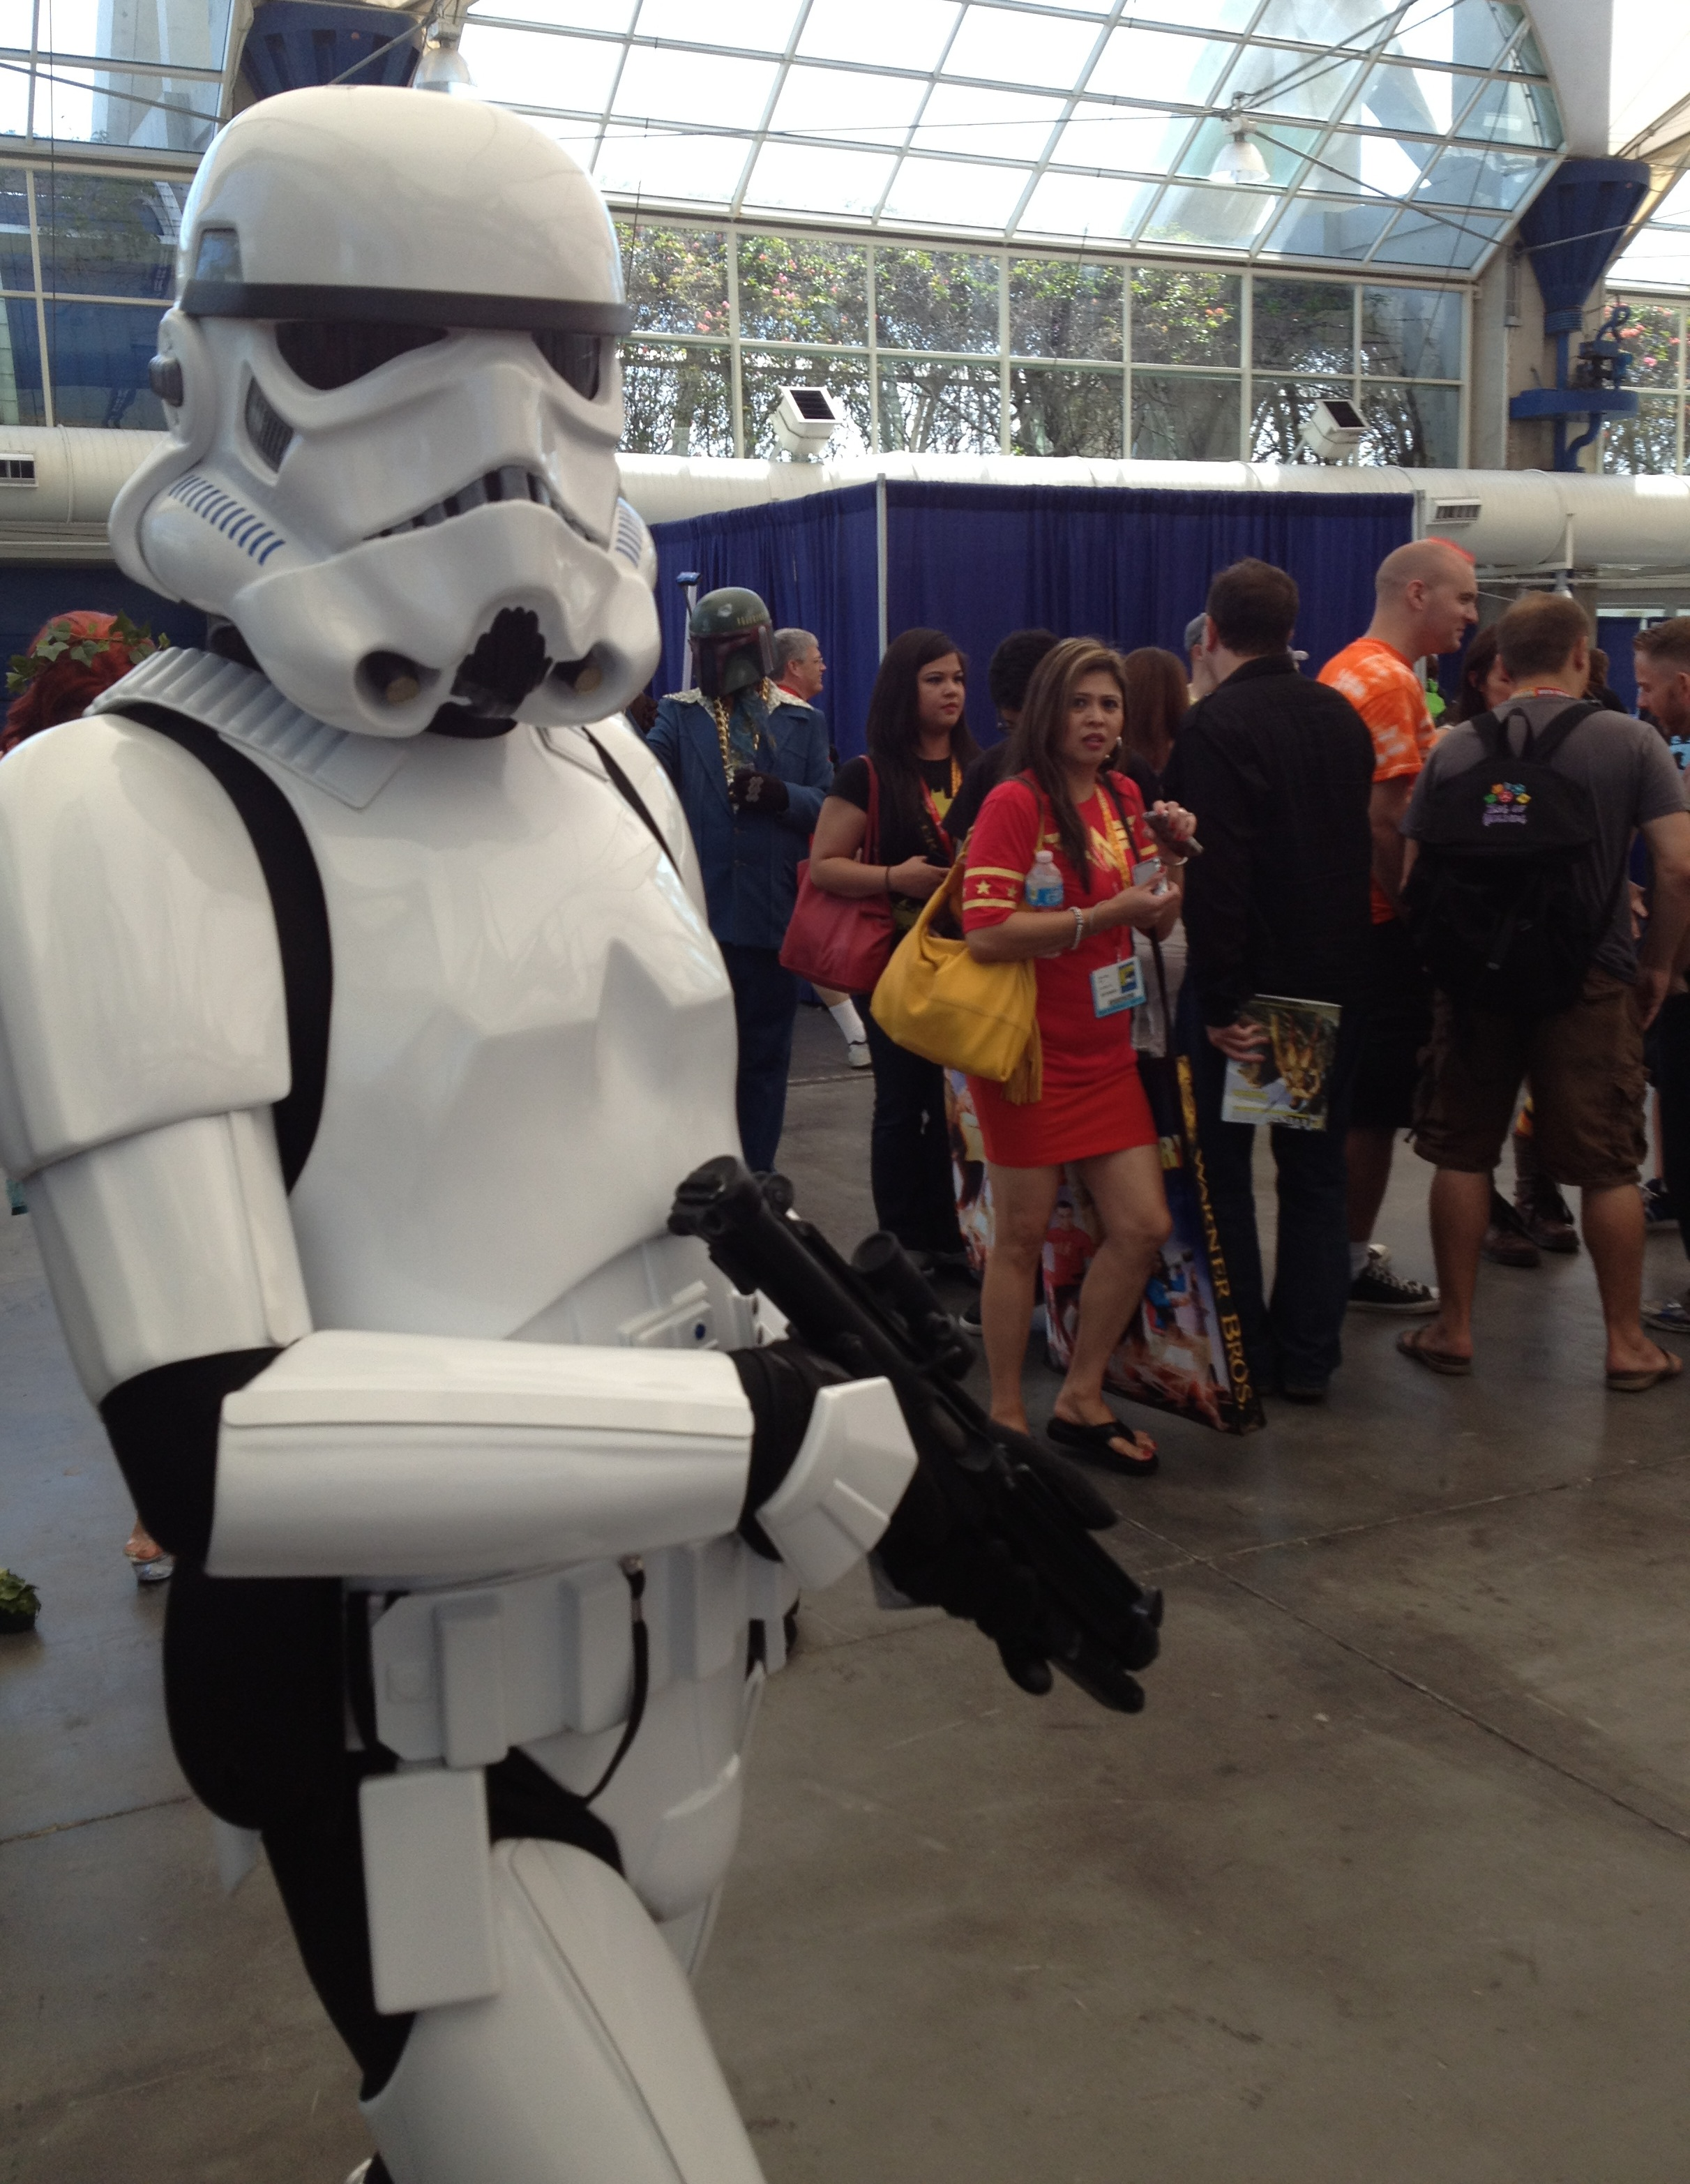 Spotted Storm Trooper!